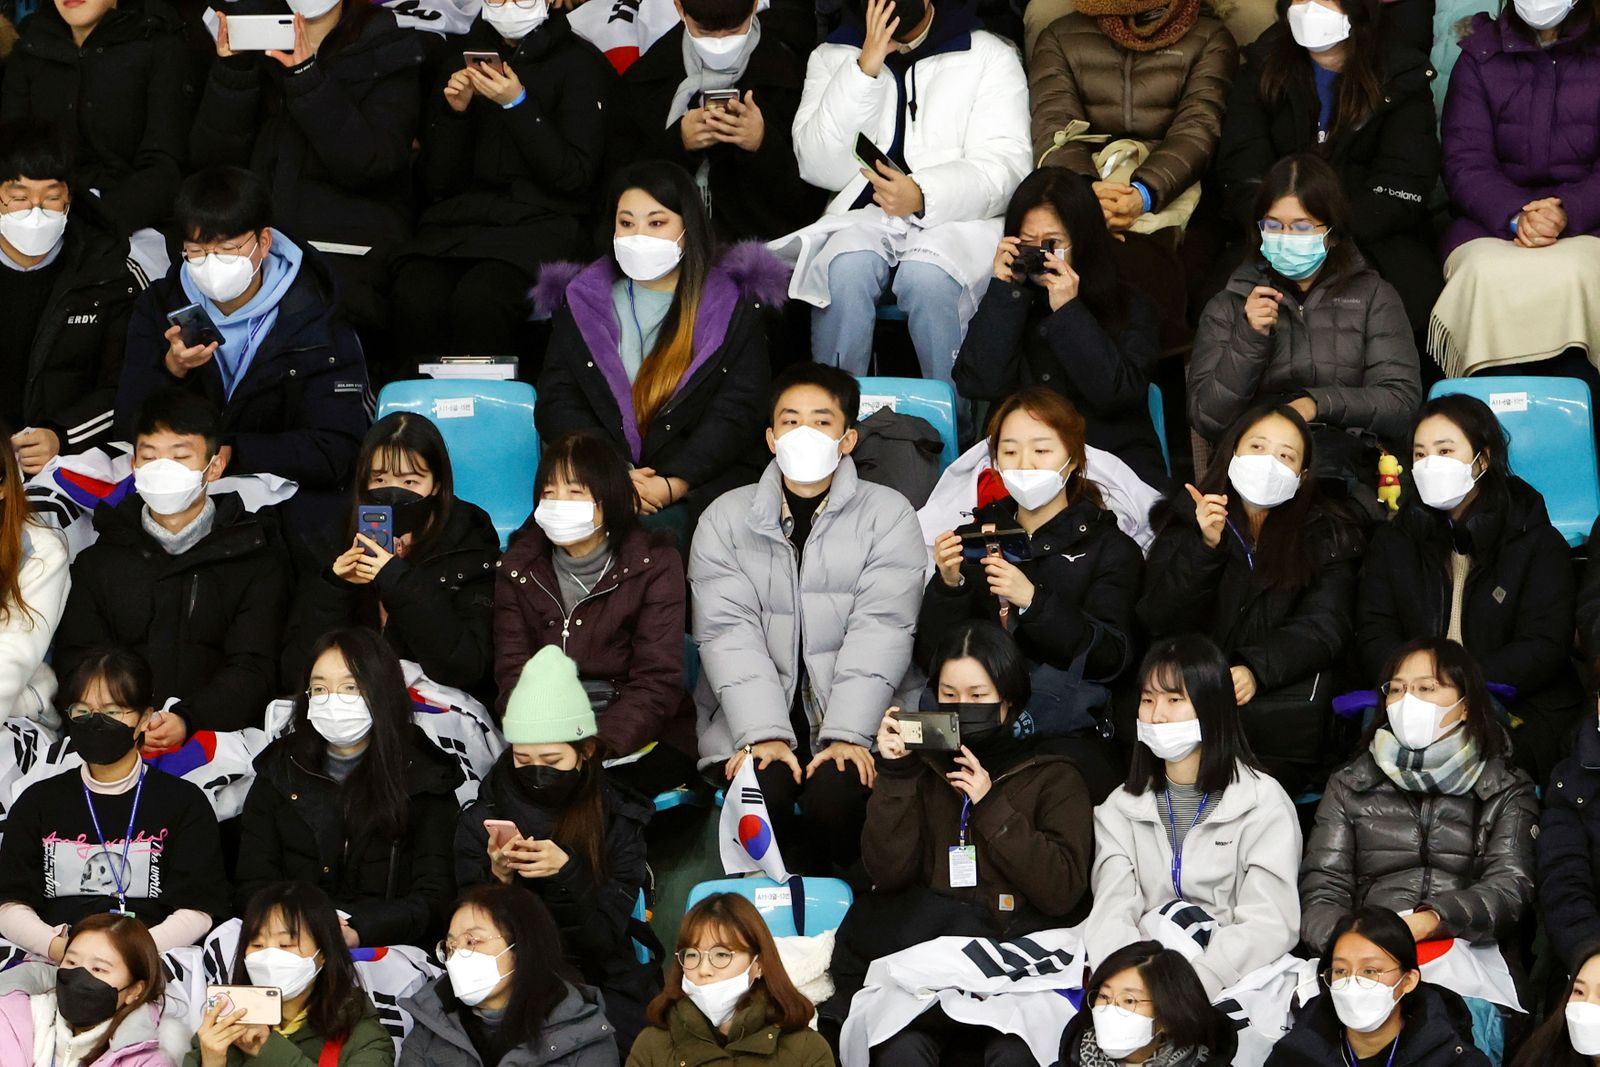 Spectators wear masks to prevent contacting a new coronavirus during Four Continents Figure Skating Championships 2020 in Seoul